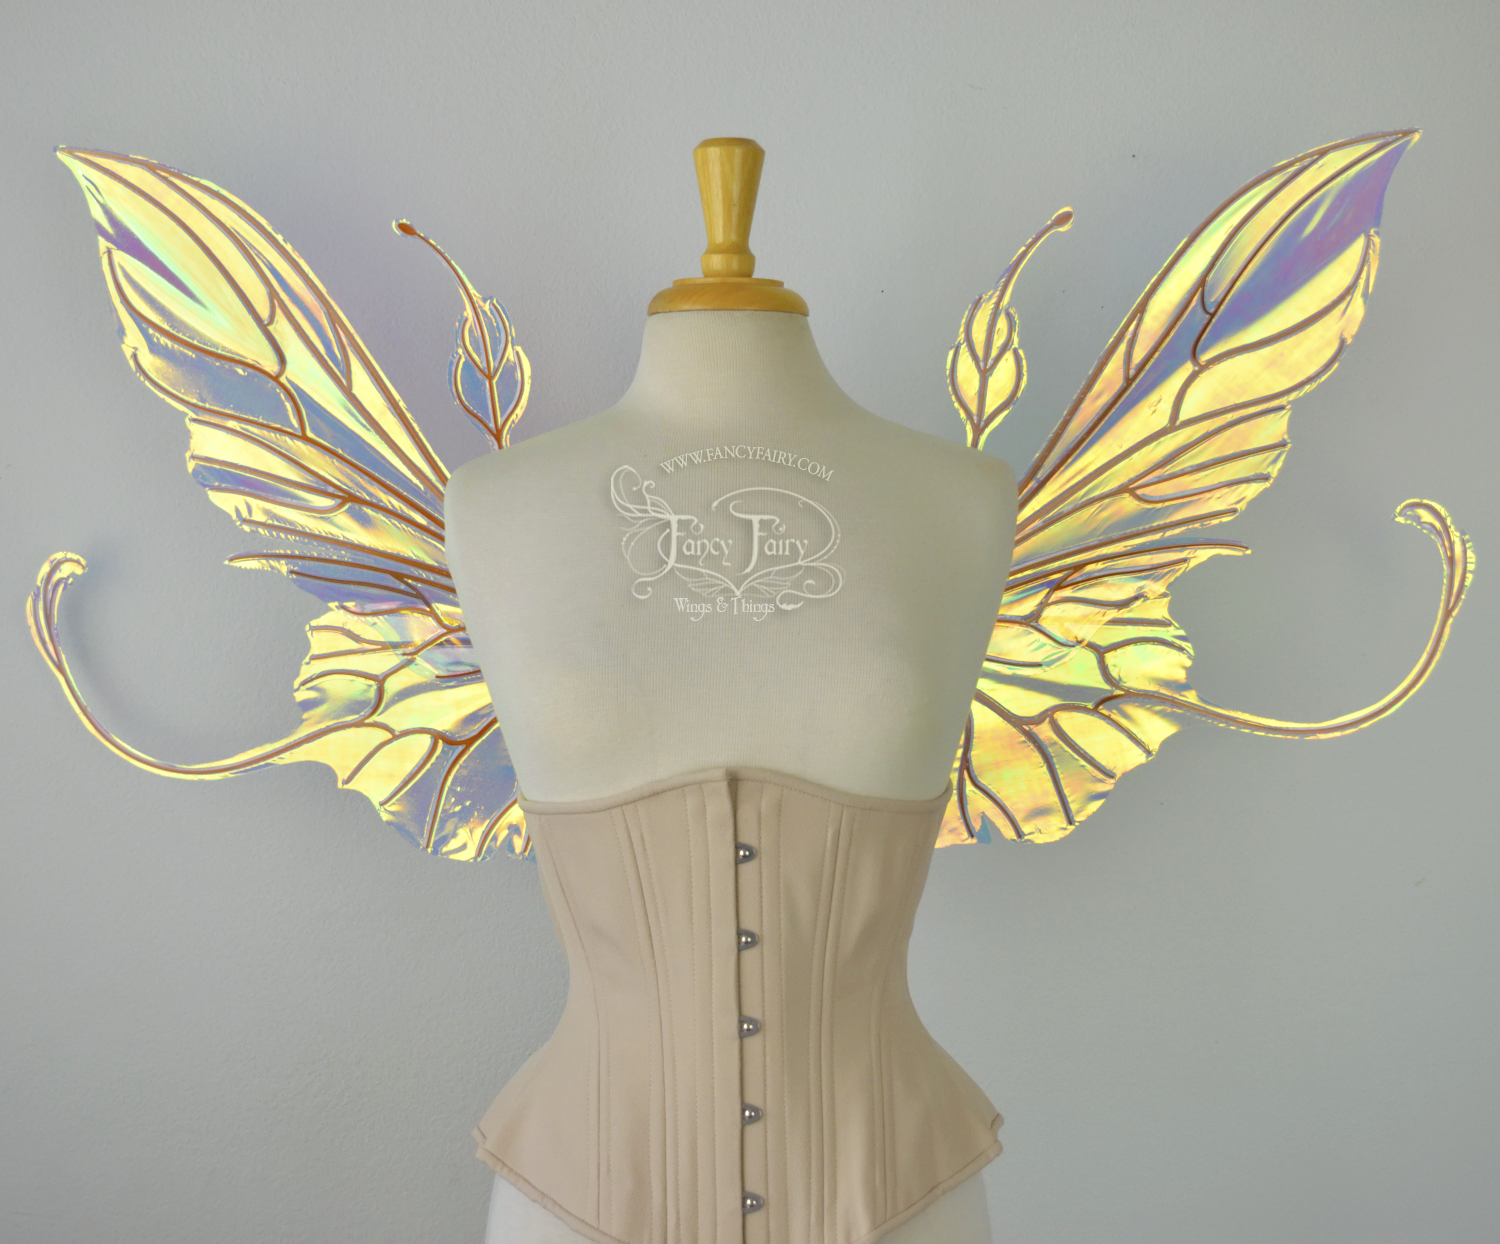 Elvina Convertible Fairy Wings in Clear Diamond Fire w/ black veins